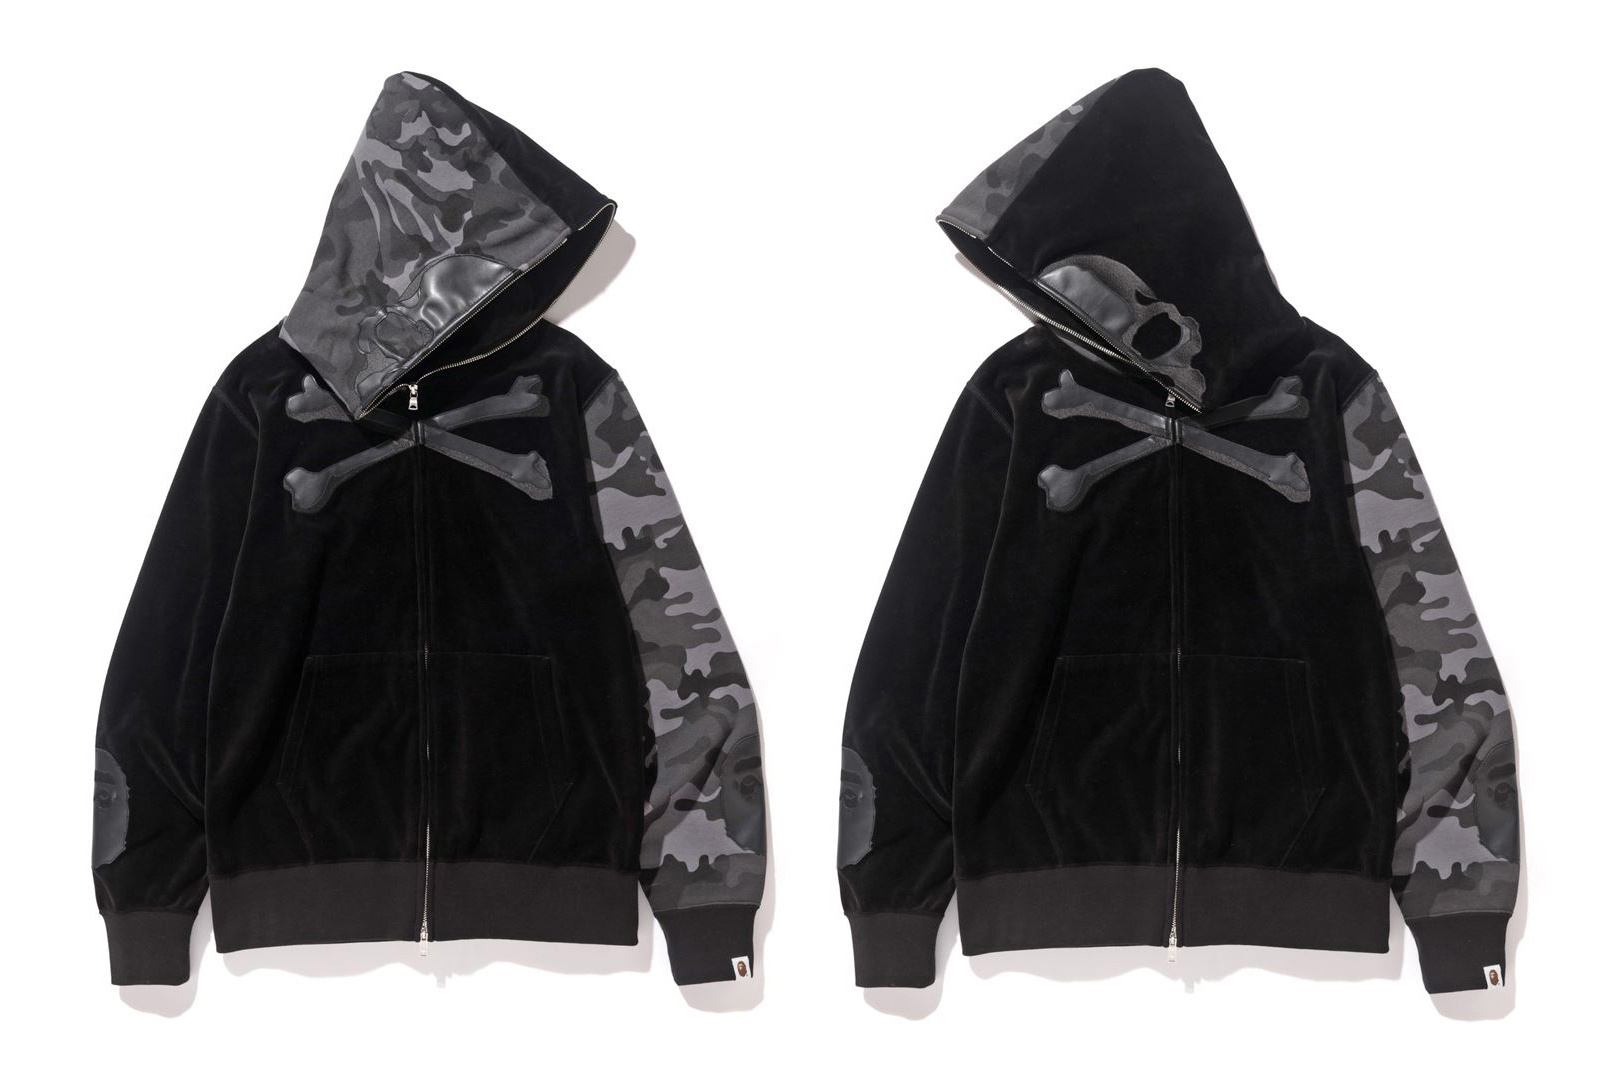 bape-x-mastermind-japan-2016-fall-winter-collaboration-000010